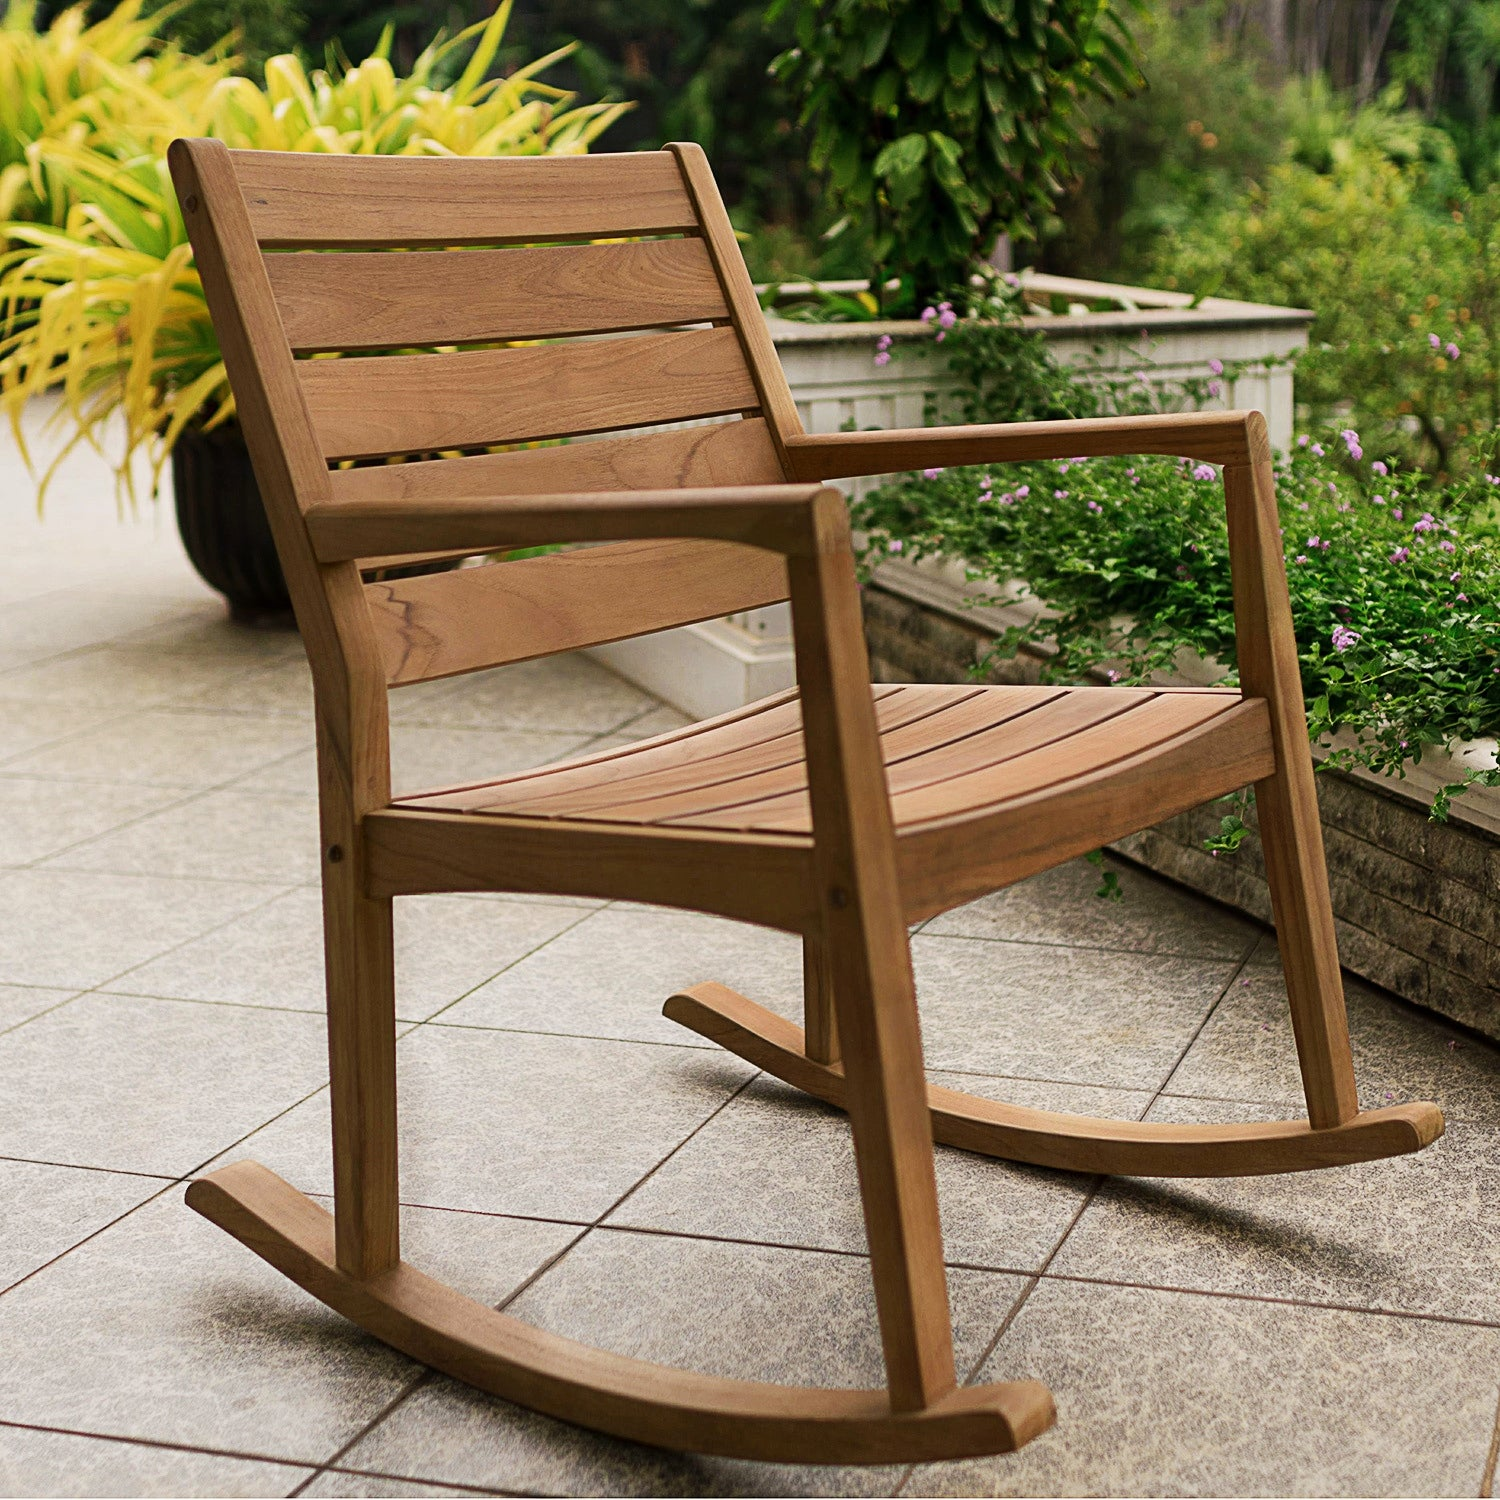 Shop Cambridge Casual Andrea Teak Rocking Chair On Sale Overstock 11190321